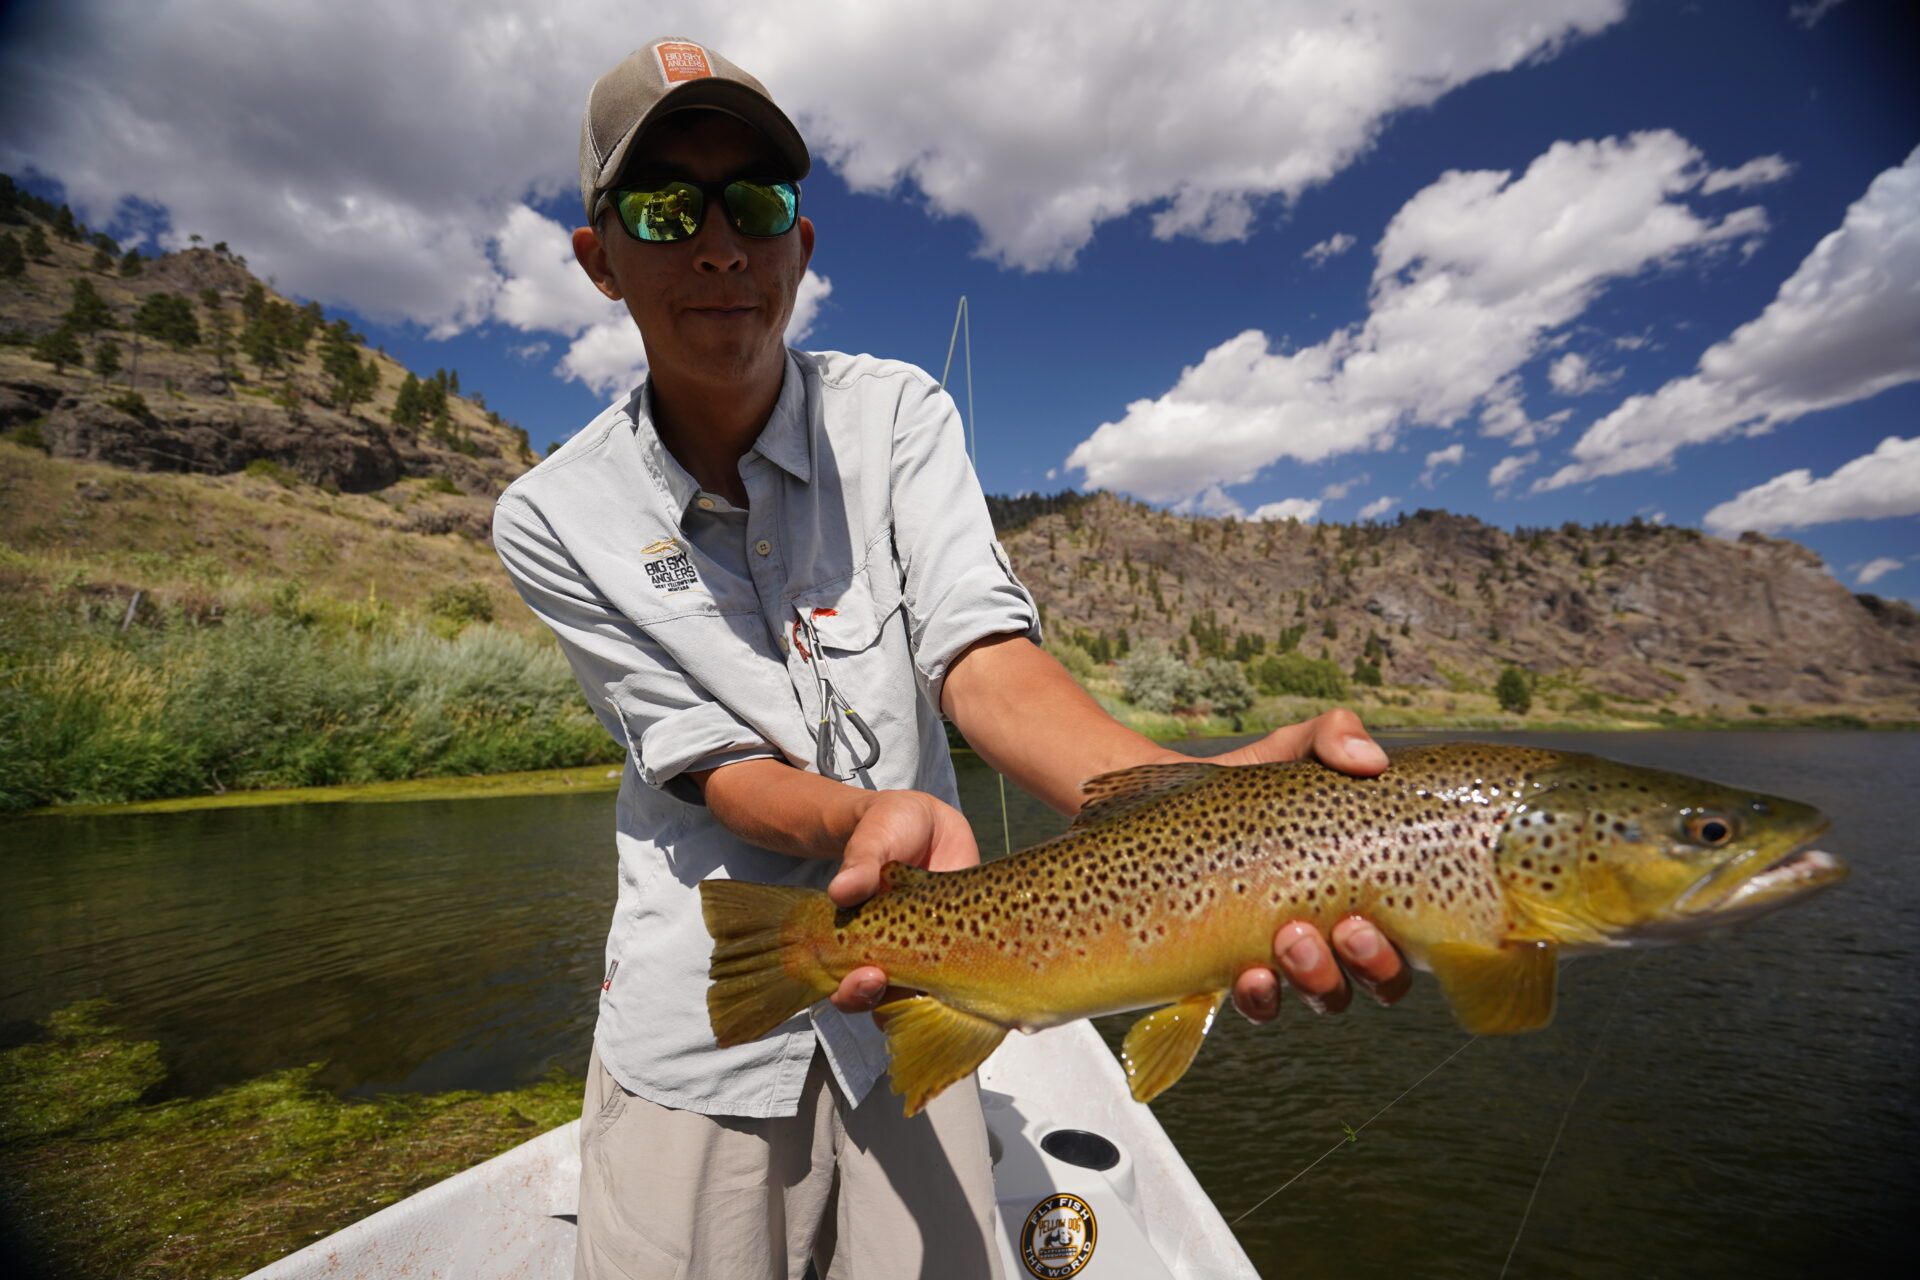 Hopper fishing can be great on Montana's Missouri River